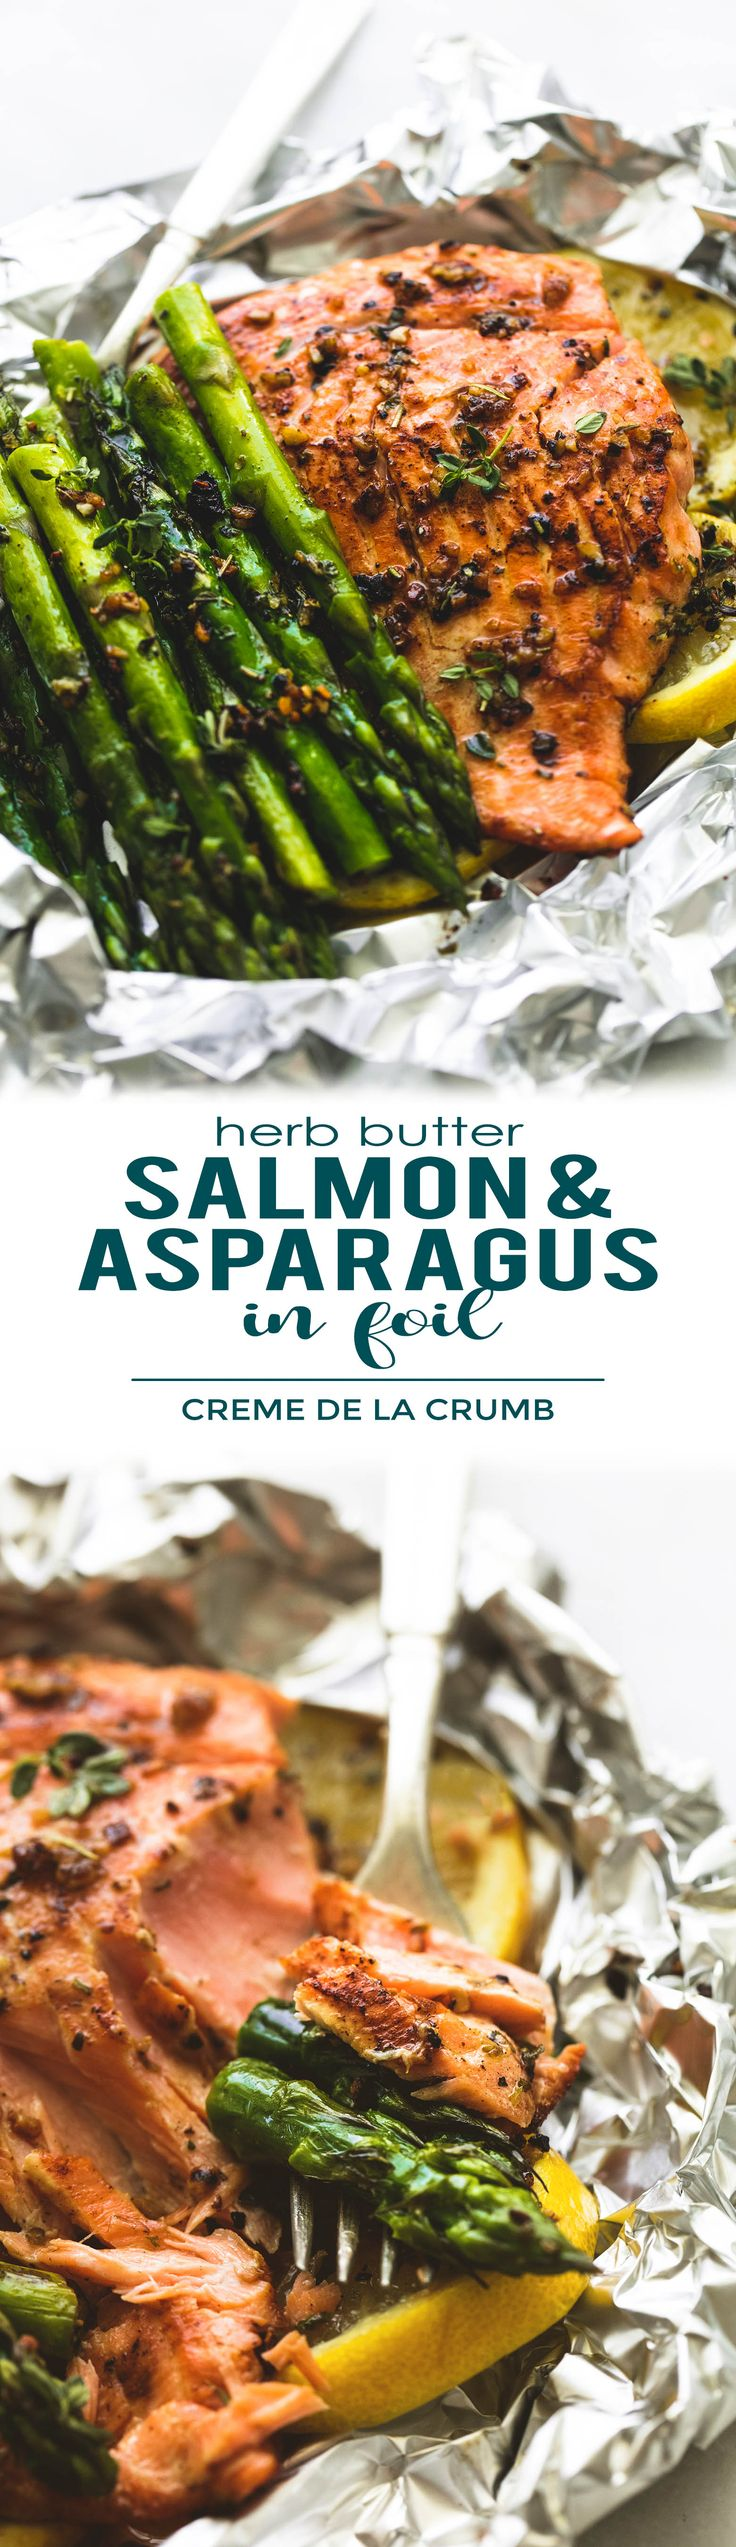 Garlic Herb Butter Salmon And Asparagus Foil Packs